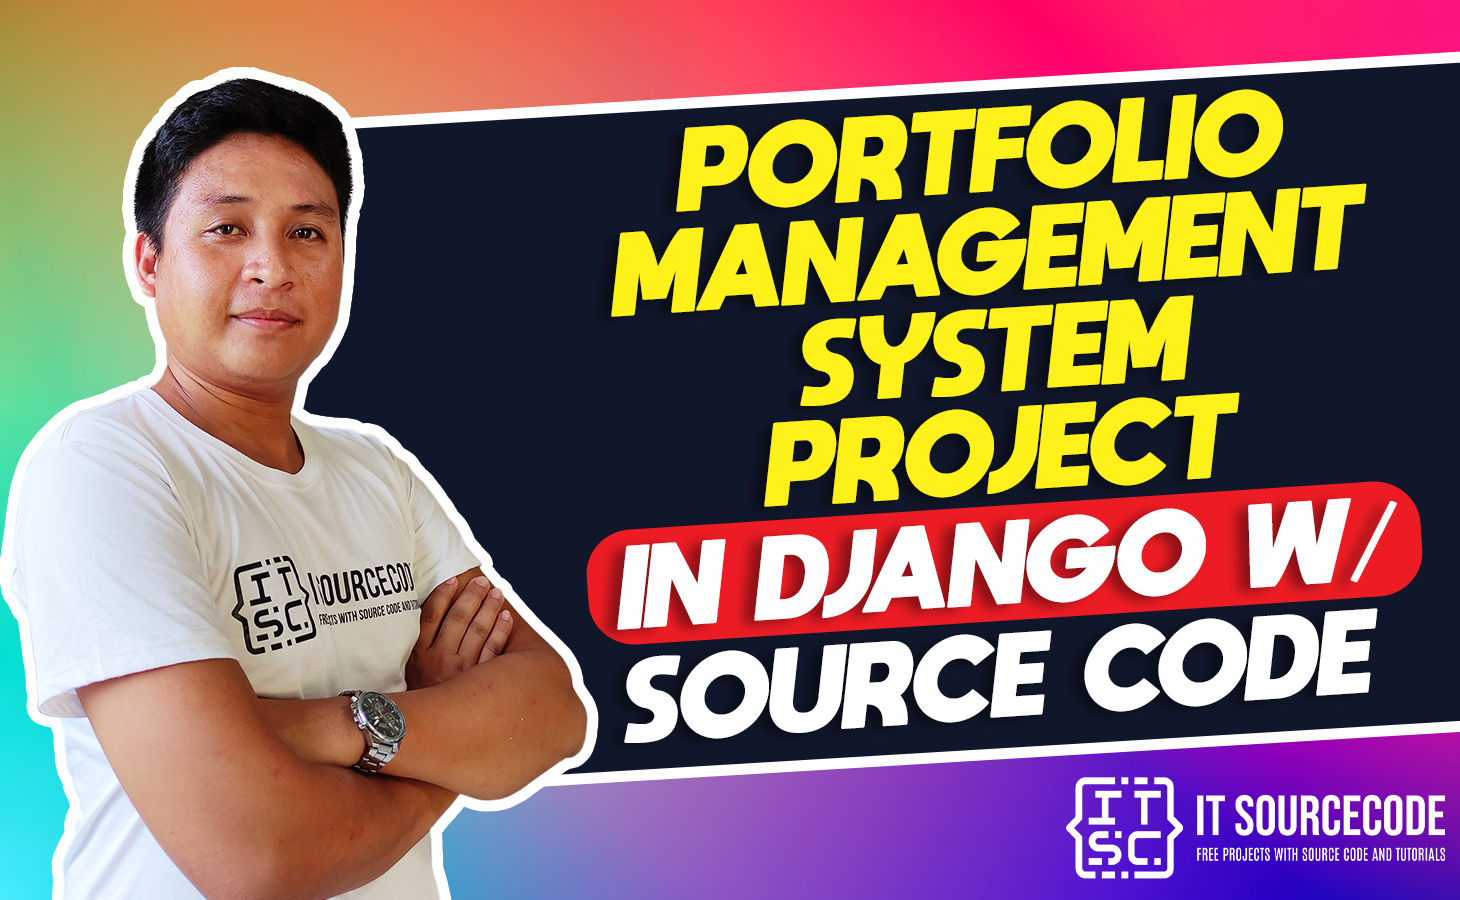 portfolio management system project in django with source code